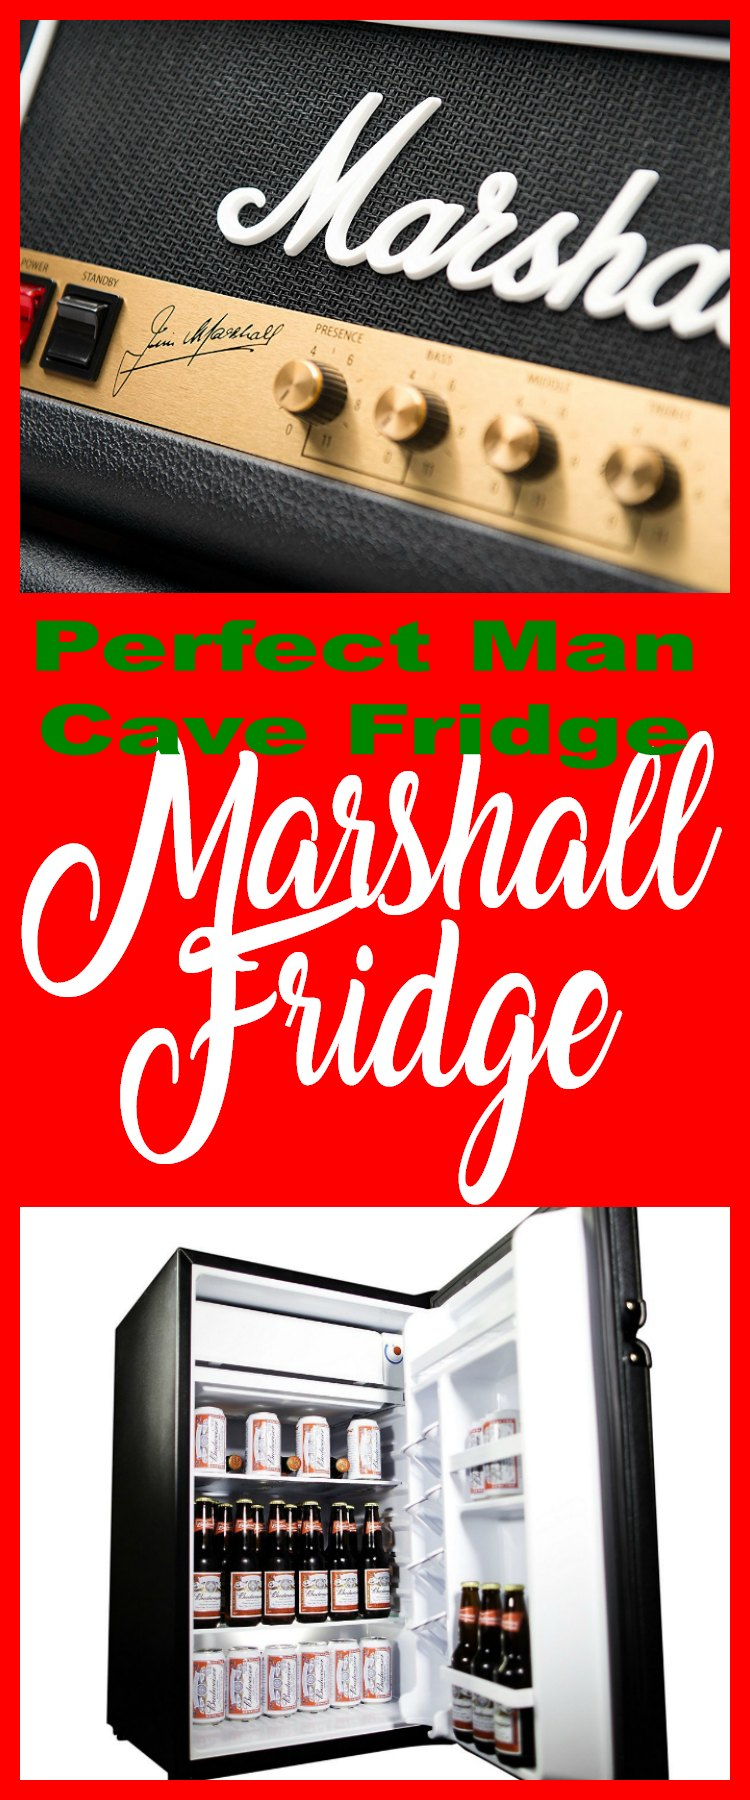 Marshall Fridge - Perfect Man Cave Fridge